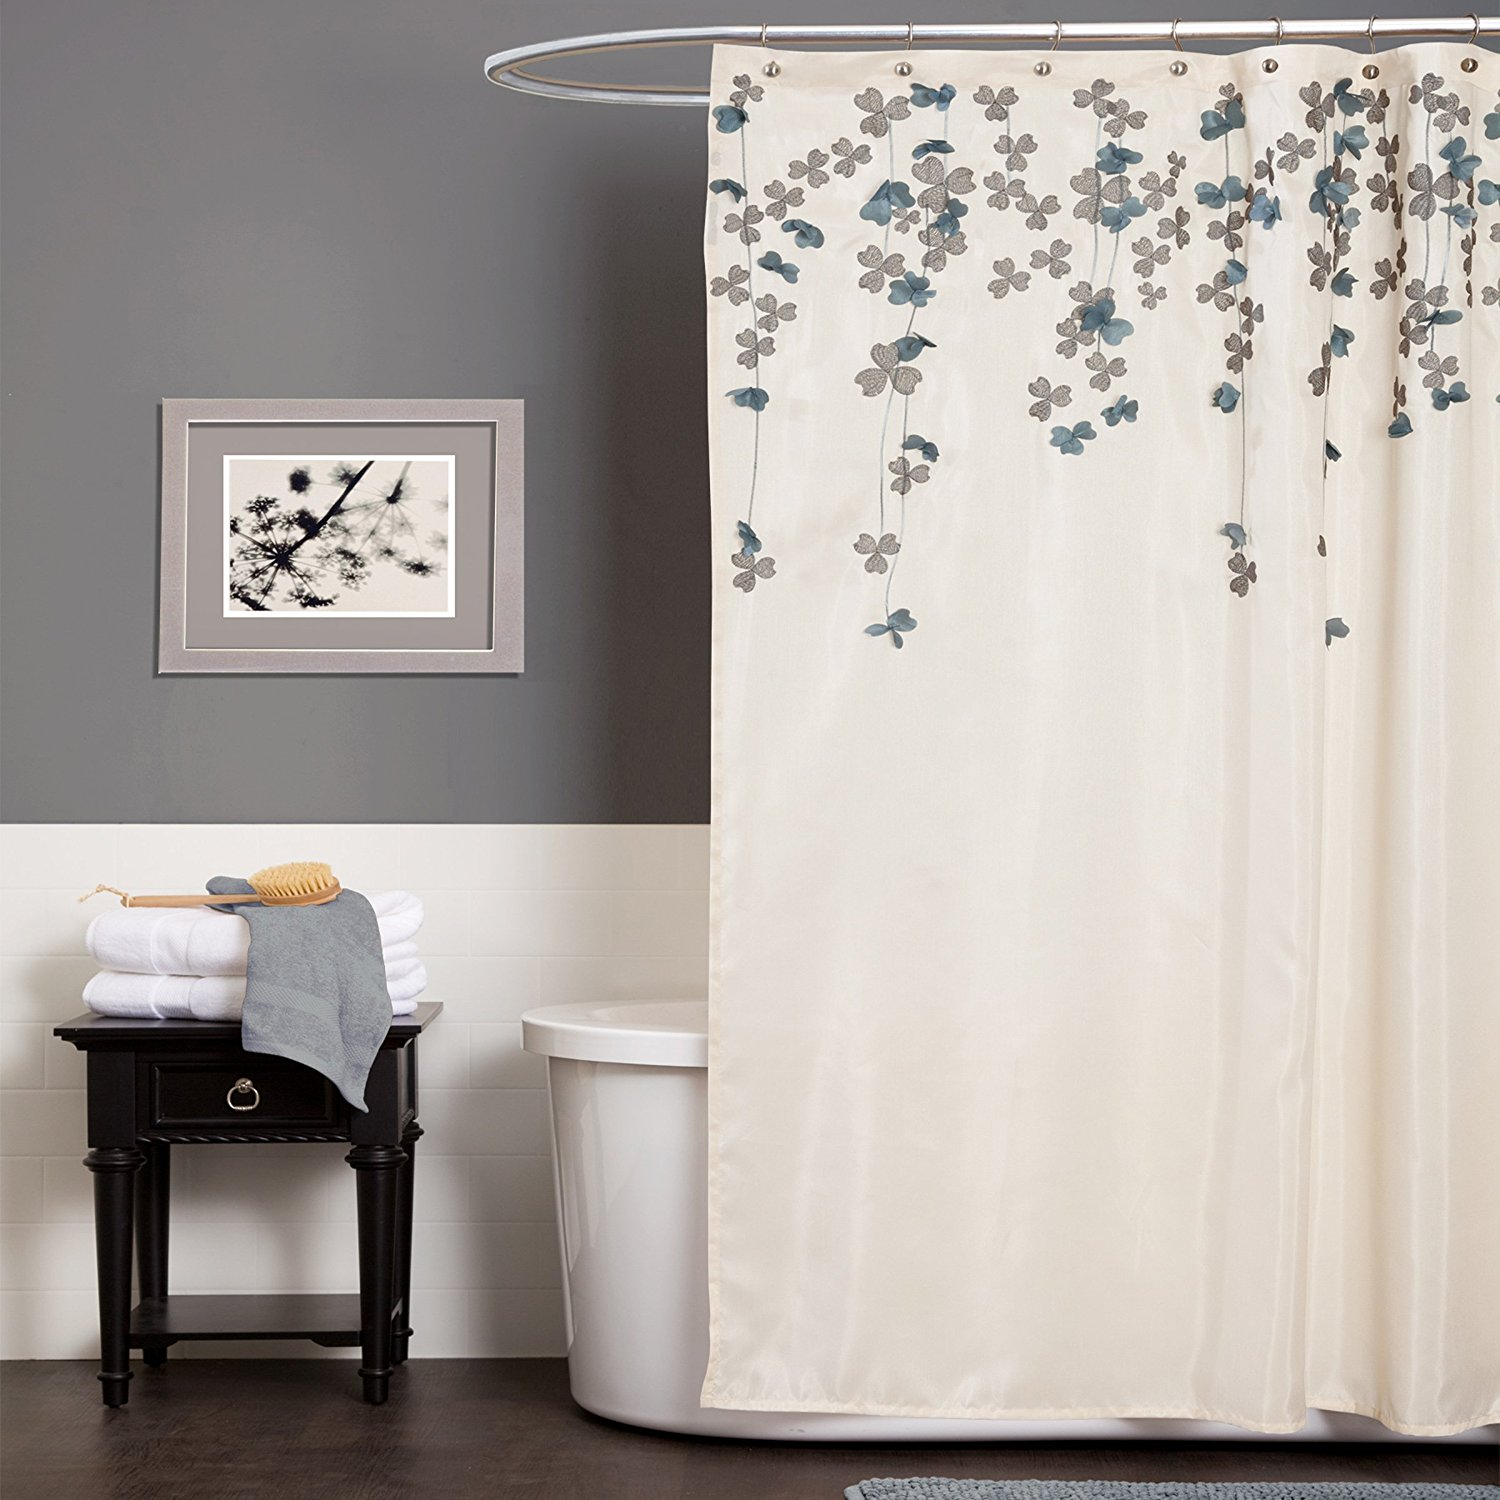 Floral Shower Curtain | Floral Shower Curtain | Shower Curtain Free Shipping